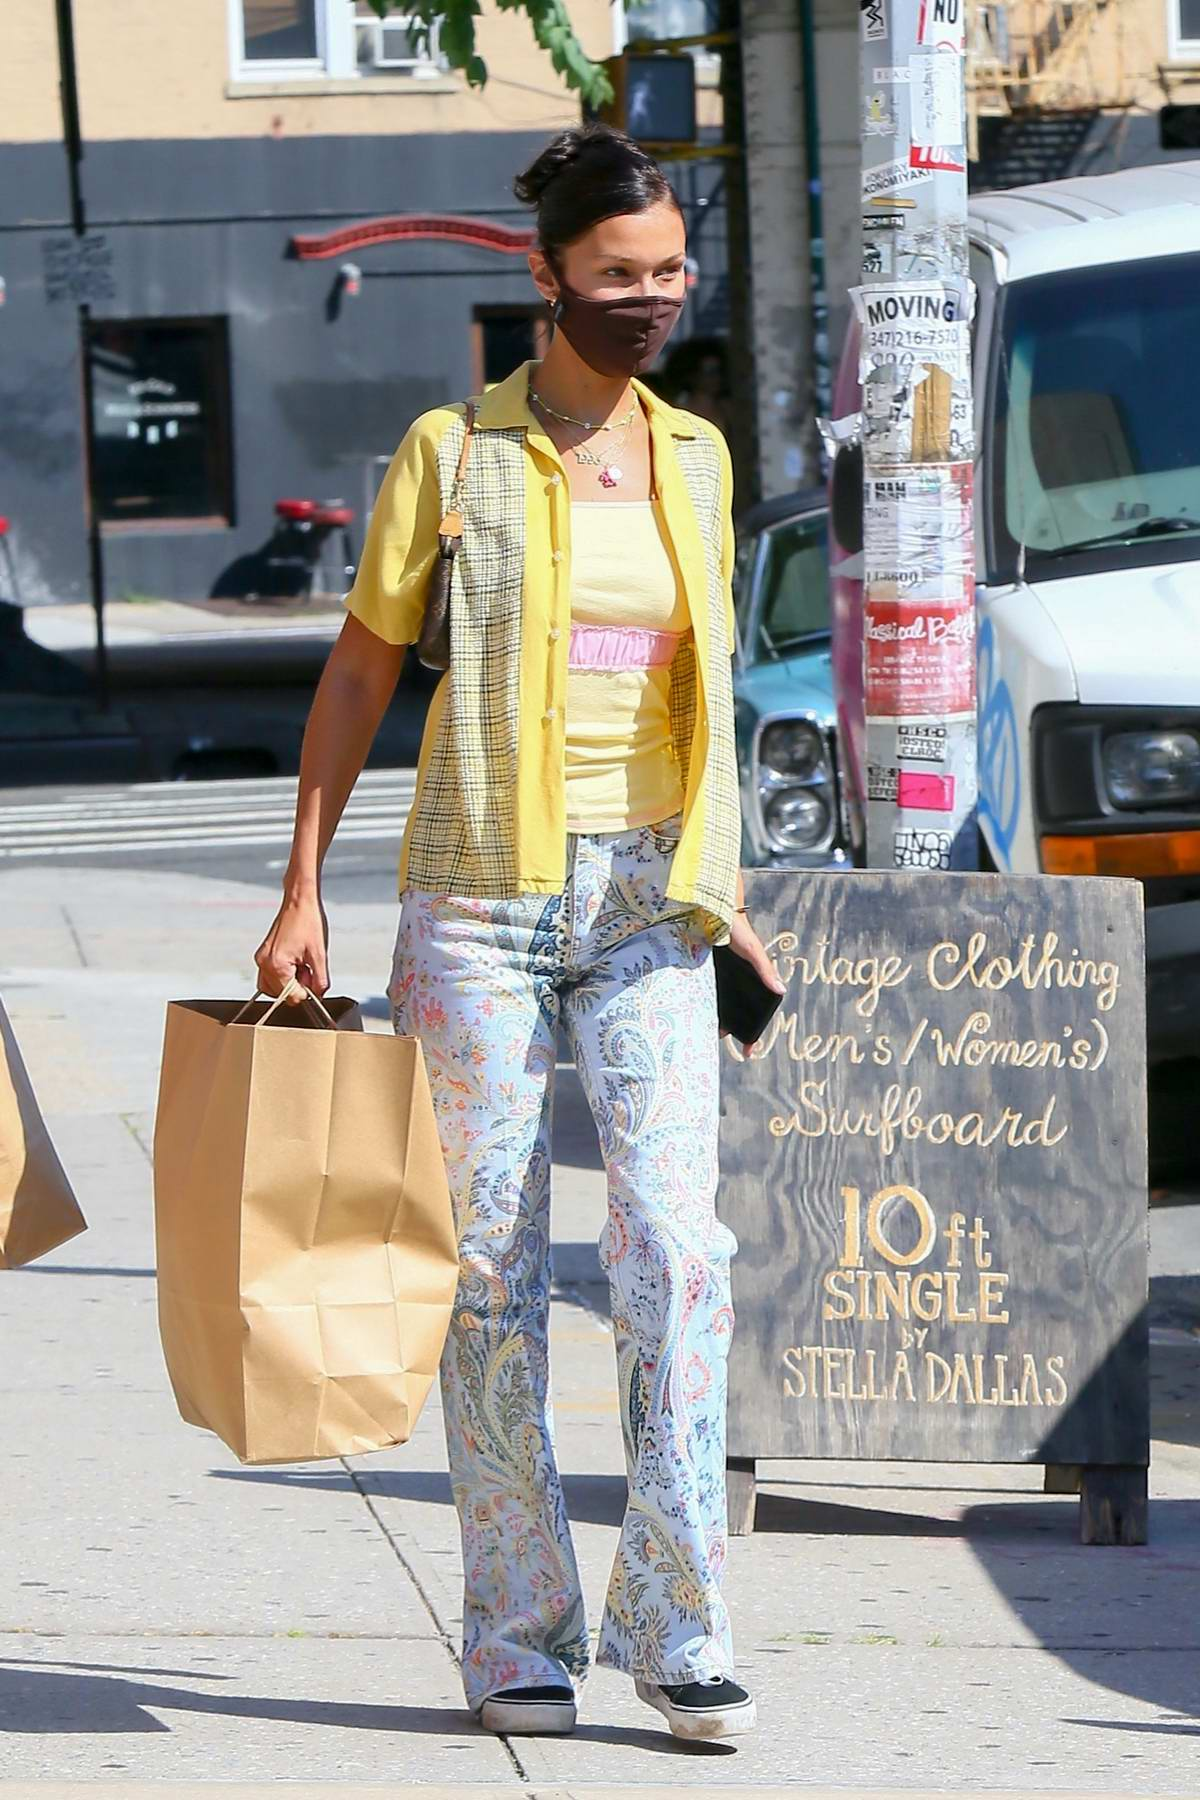 Bella Hadid wears a yellow shirt and paisley print denim while out for shopping with a friend in Brooklyn, New York